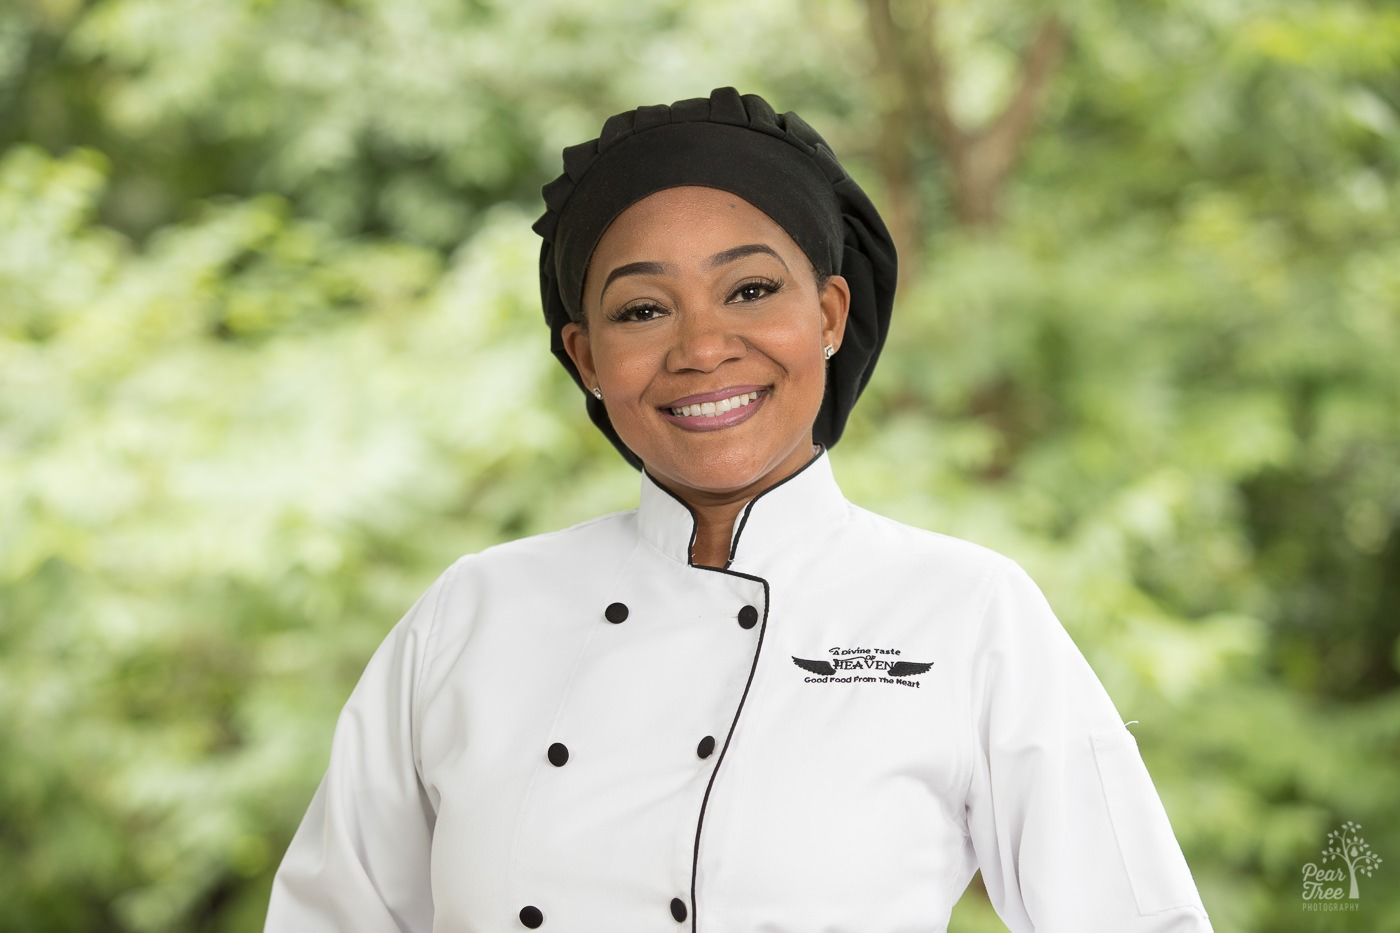 Headshot of chef Shantel Dean in white chef coat and black chef hat with Divine Taste of Heaven